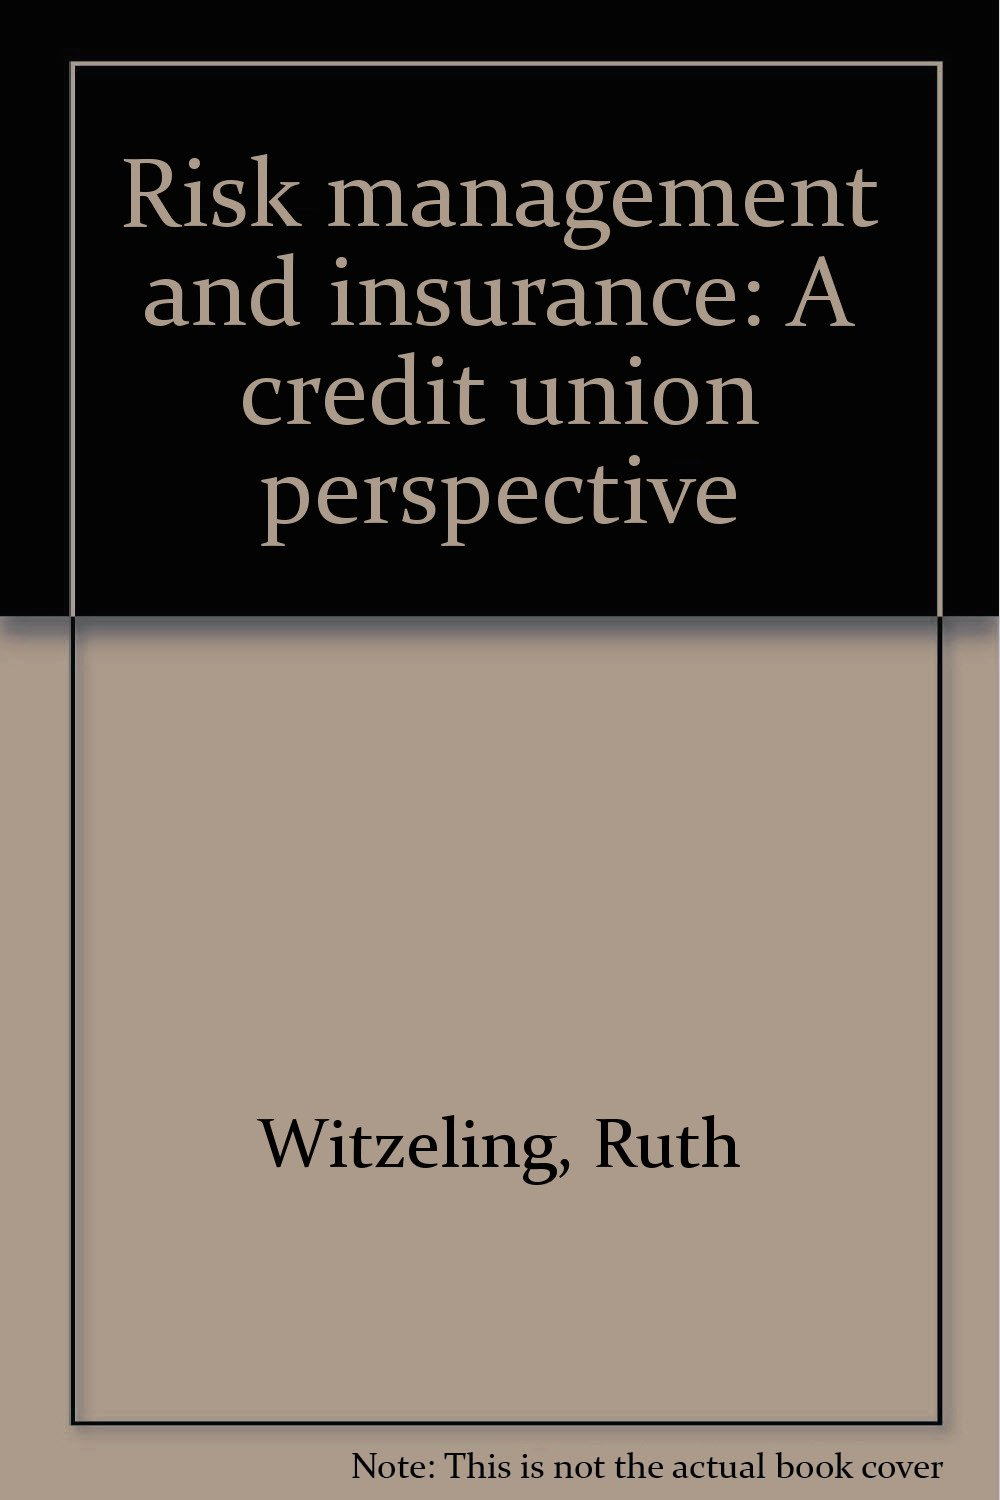 Risk management and insurance: A credit union perspective